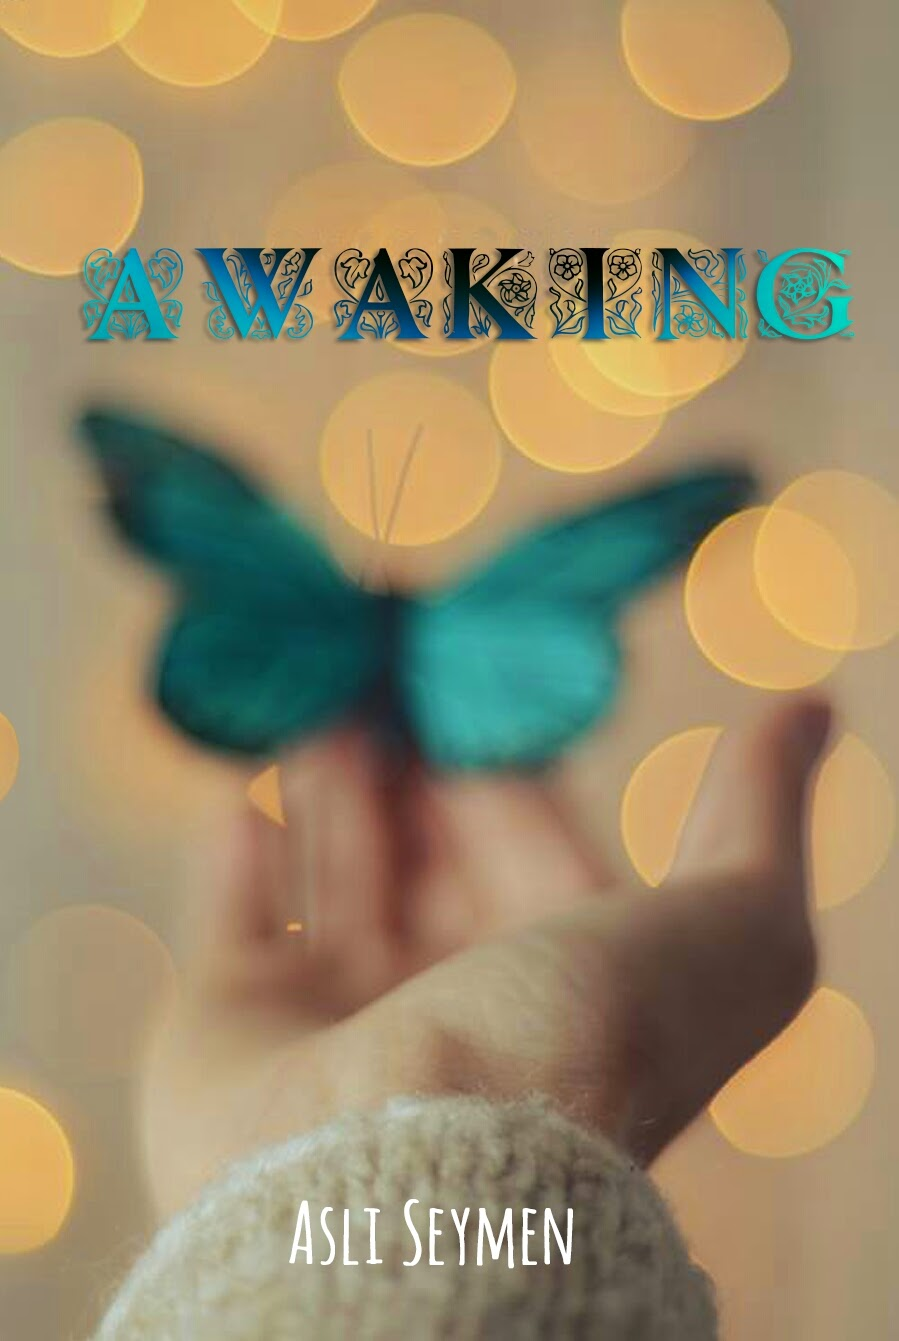 Awaking on Wattpad